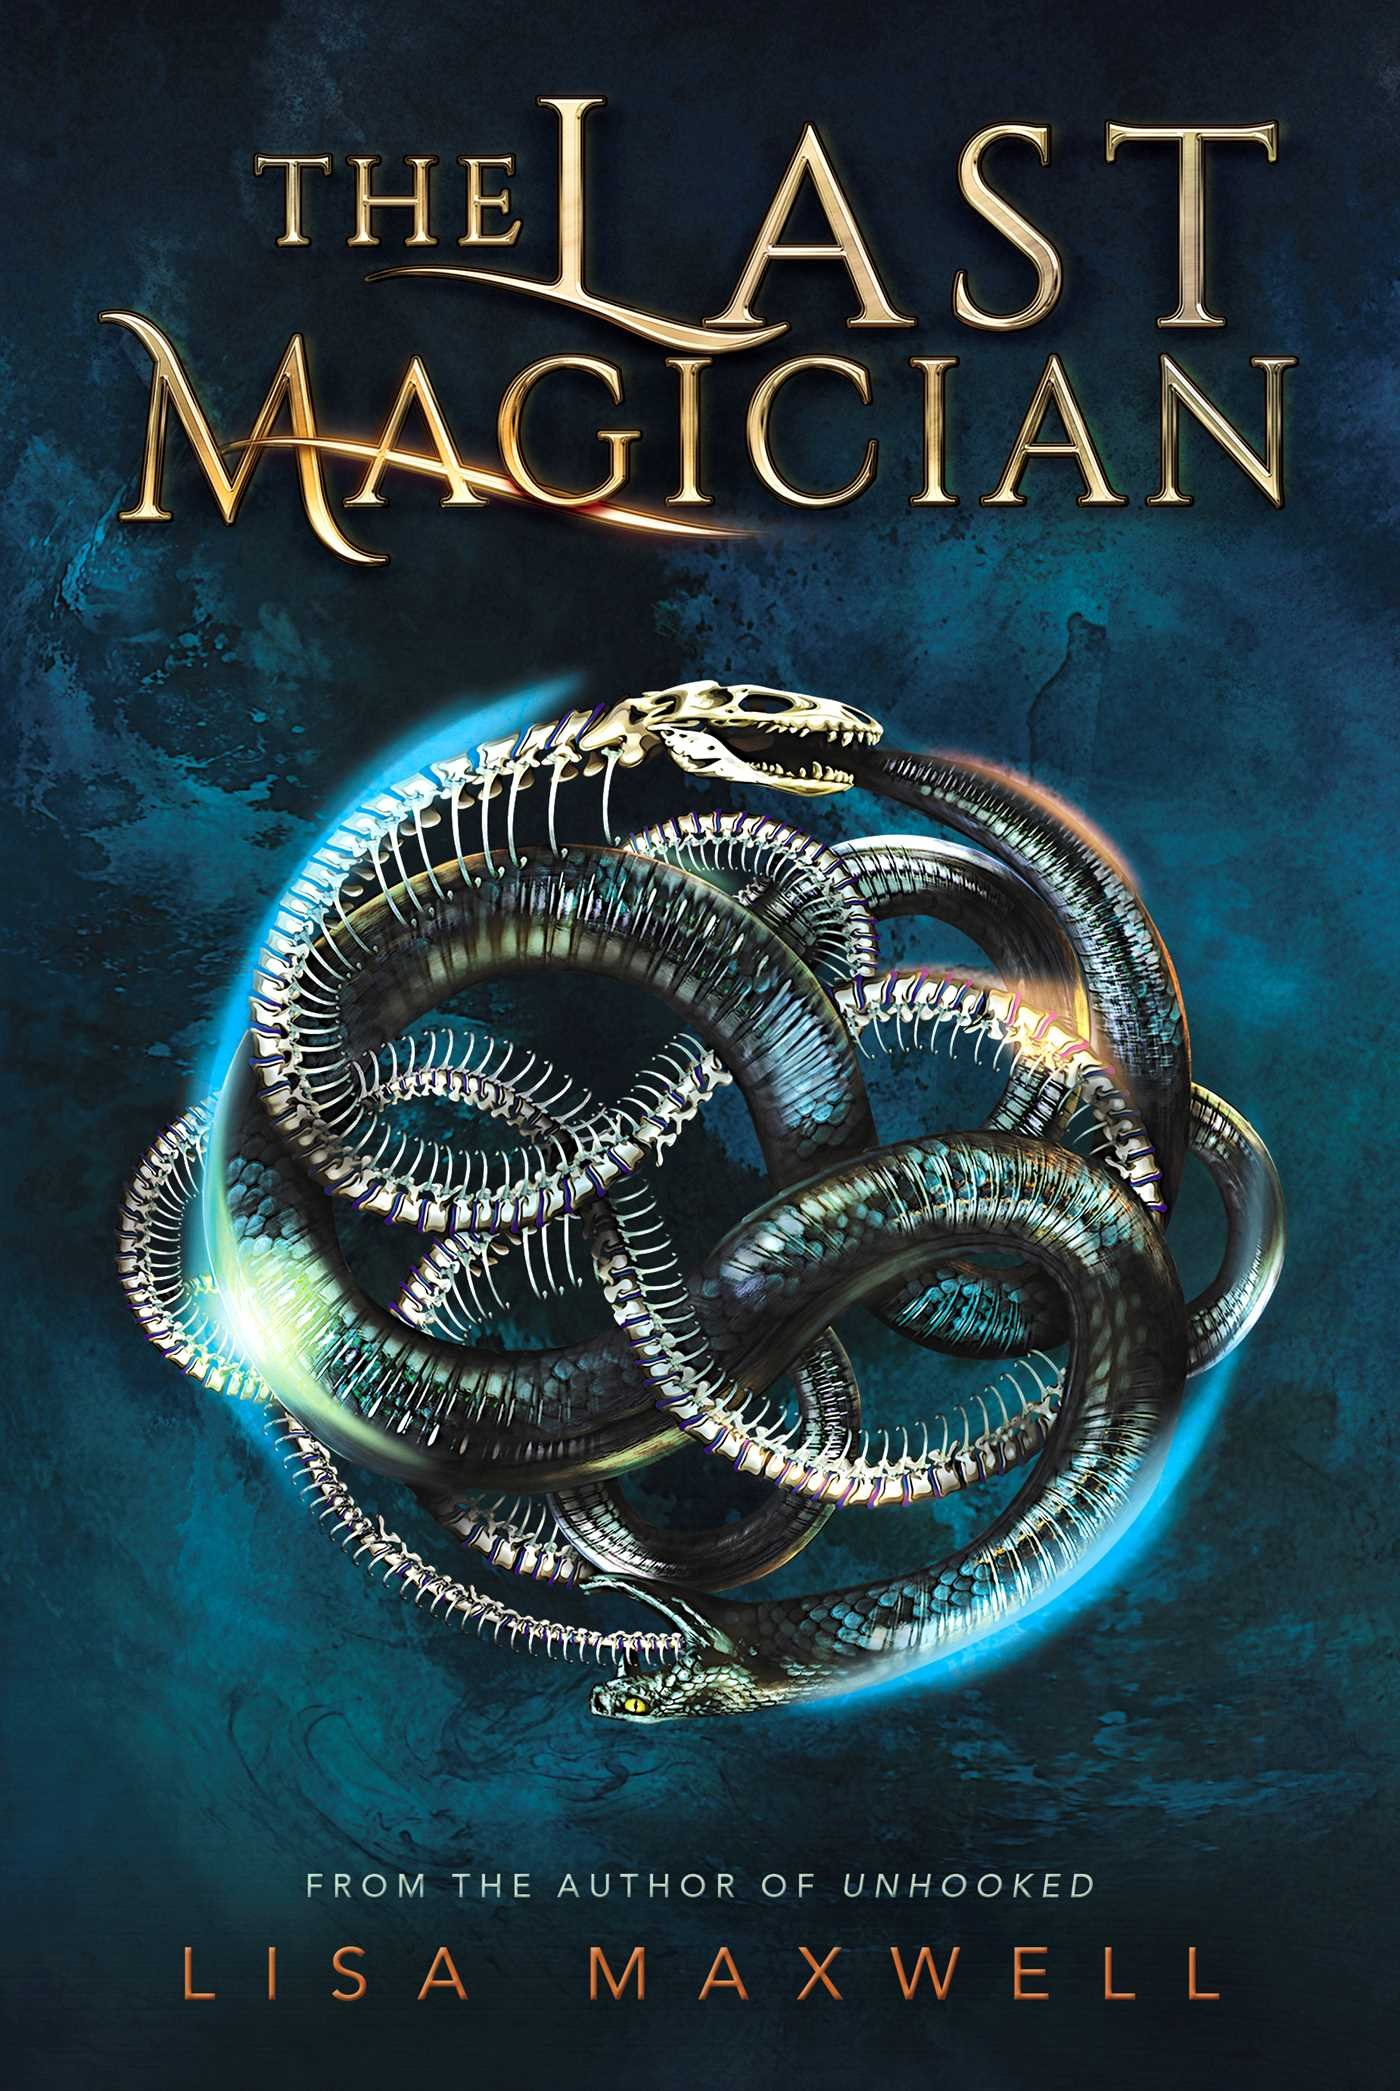 Amazon.com: The Last Magician (1) (9781481432078): Maxwell, Lisa: Books